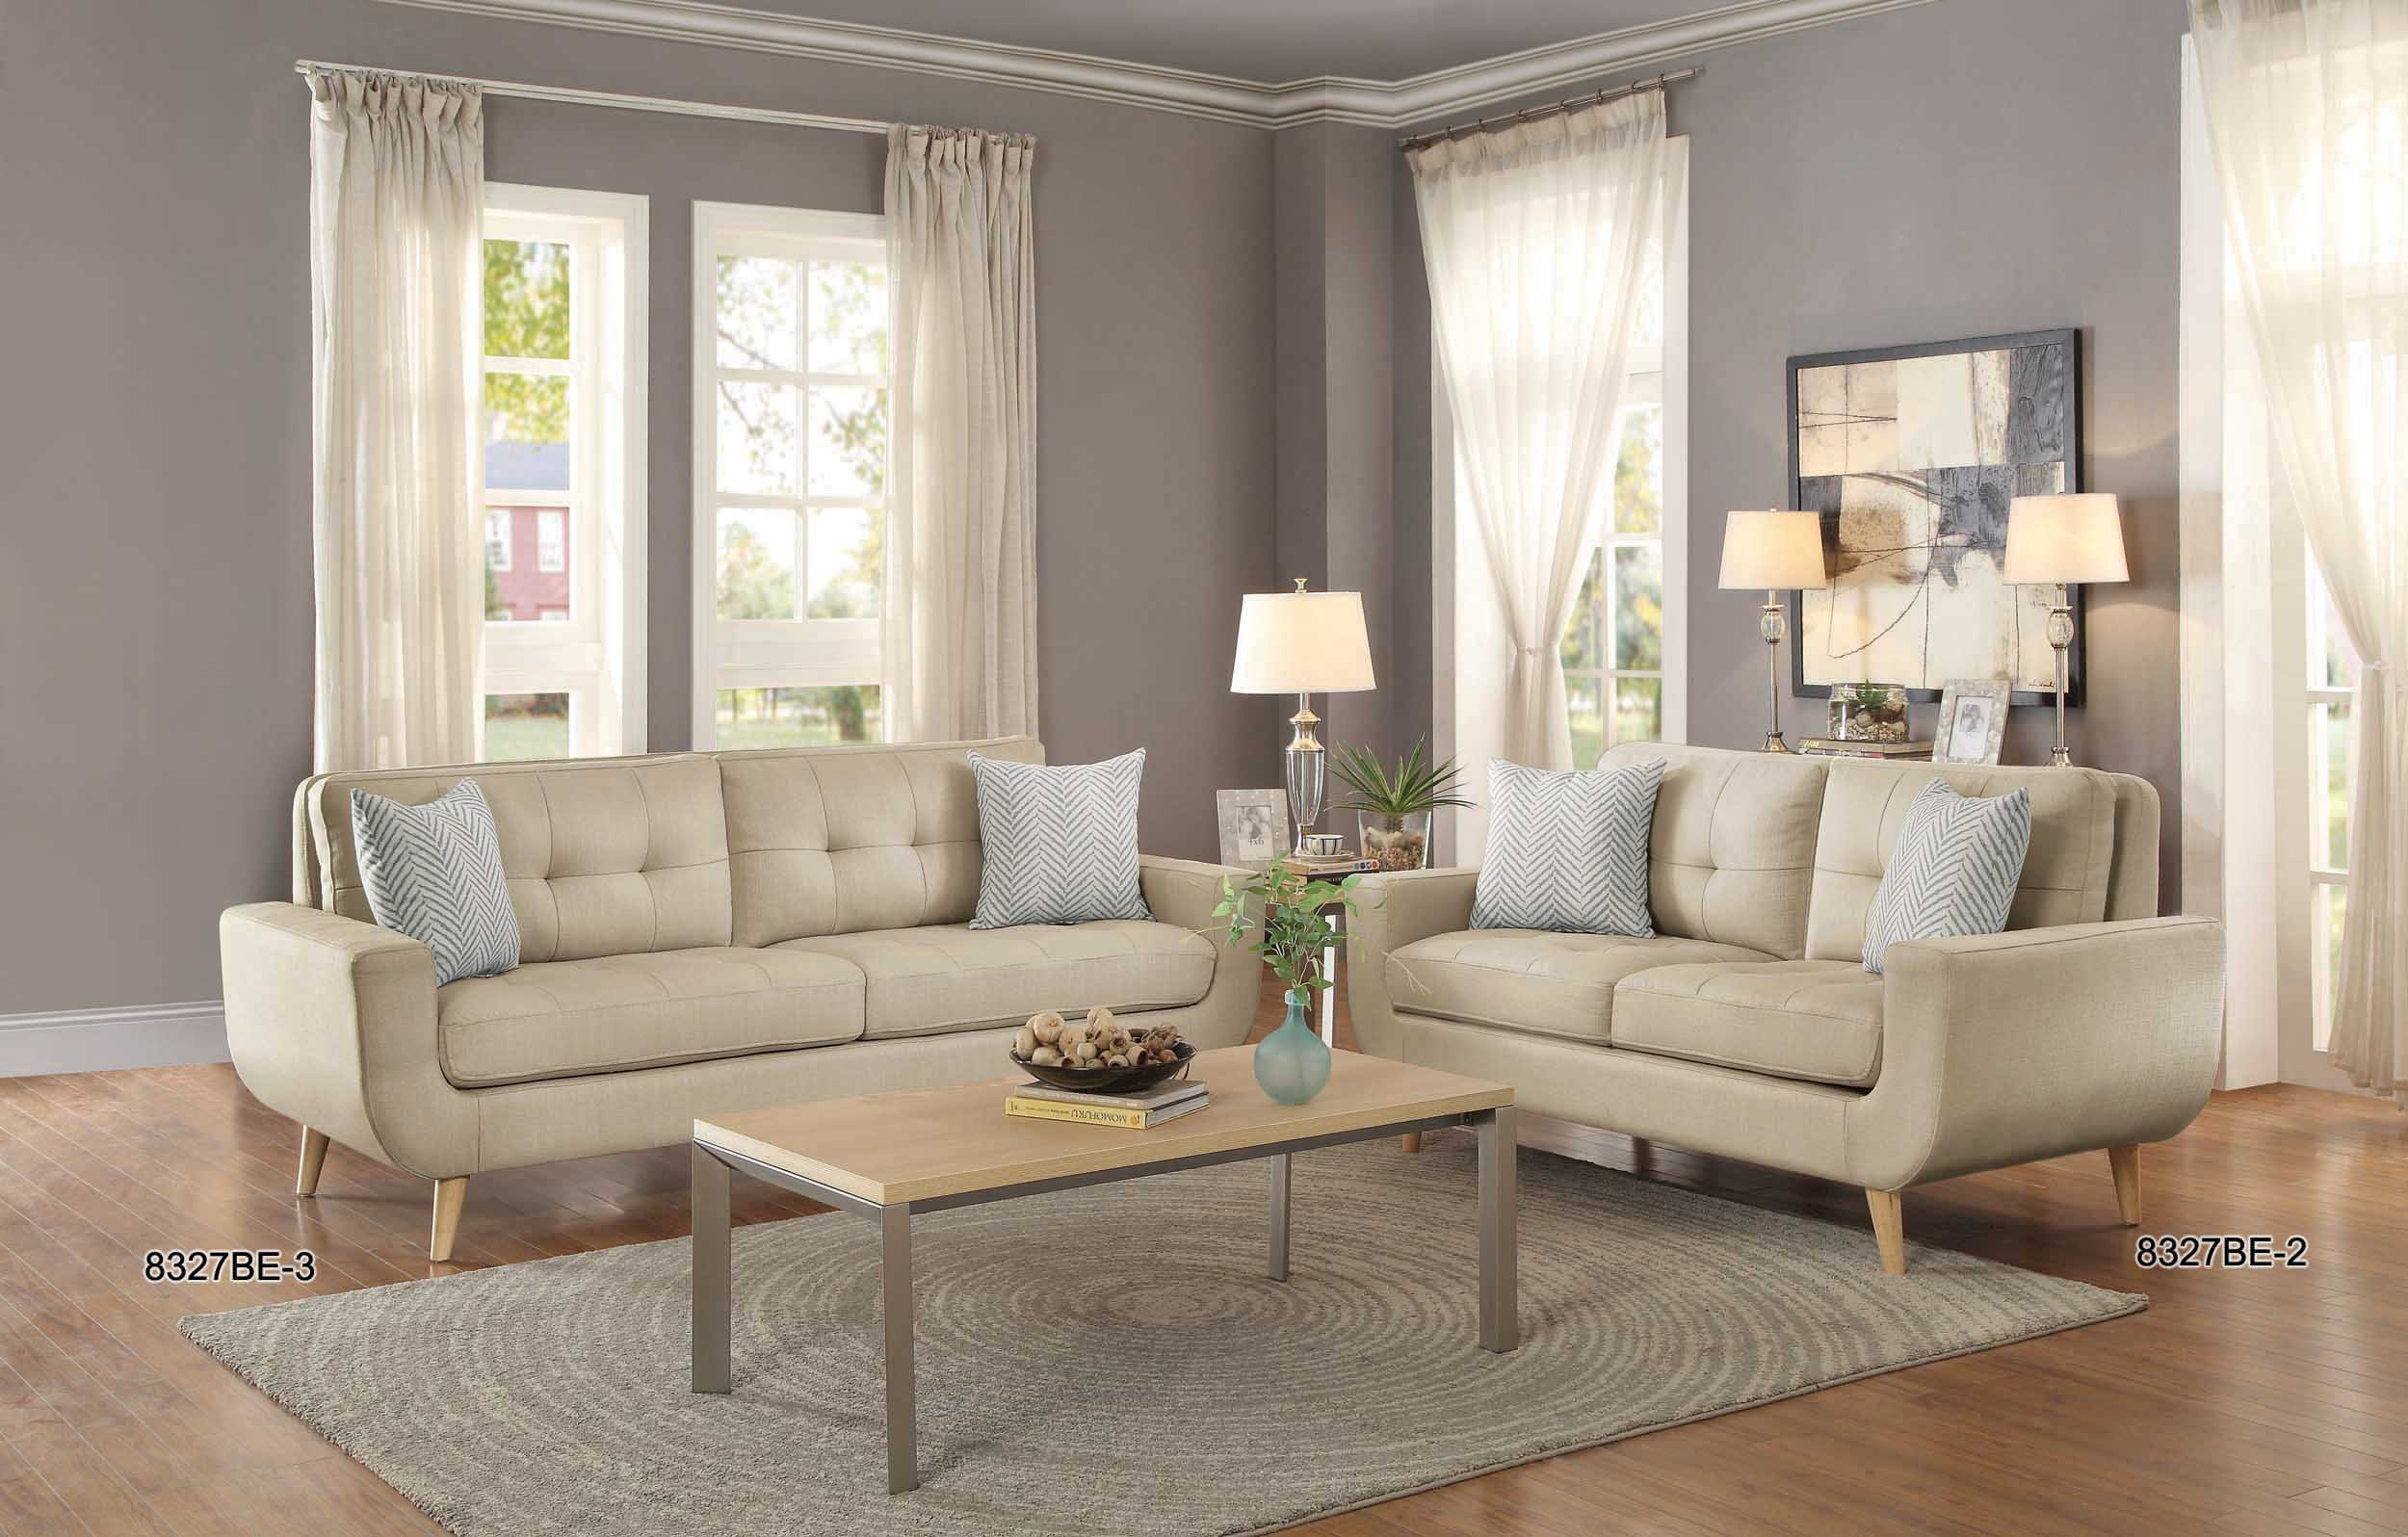 Homelegance Deryn Mid-Century Modern Loveseat with Tufted Back and Two Herringbone Throw Pillows, Beige by Homelegance (Image #4)